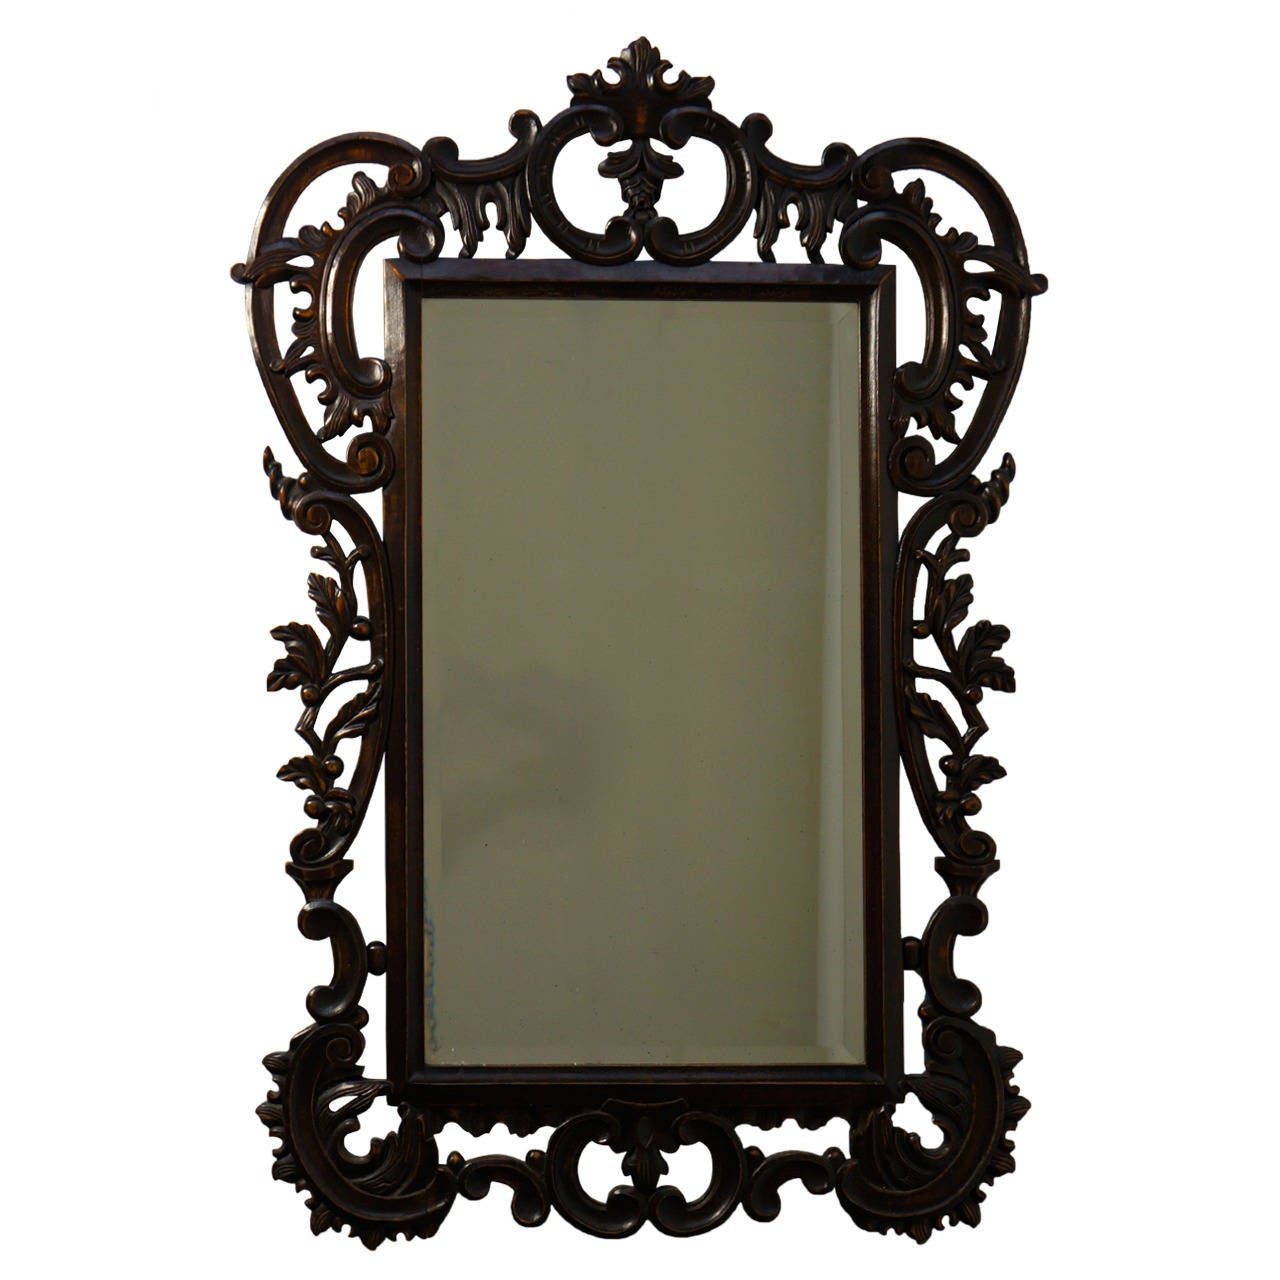 Large carved antique wooden mirror for sale at 1stdibs for Large mirrors for sale cheap